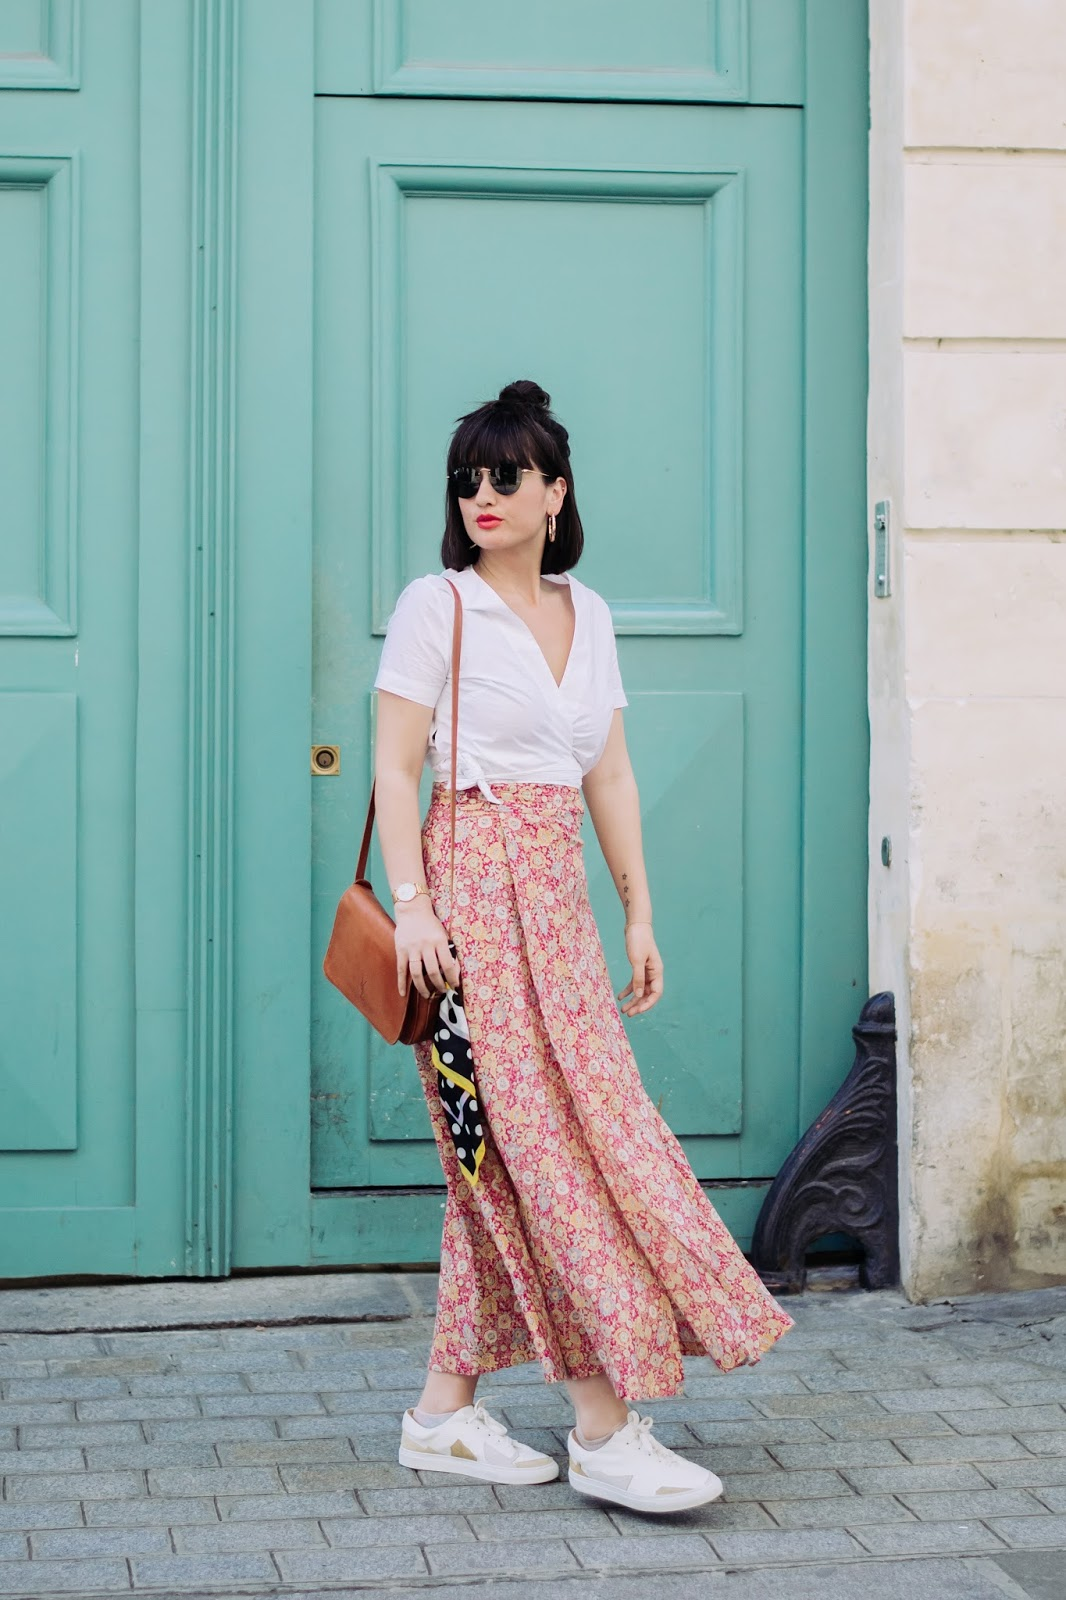 meetmeinparee-parisiandoors-paris-look-mode-fashion-streetstyle